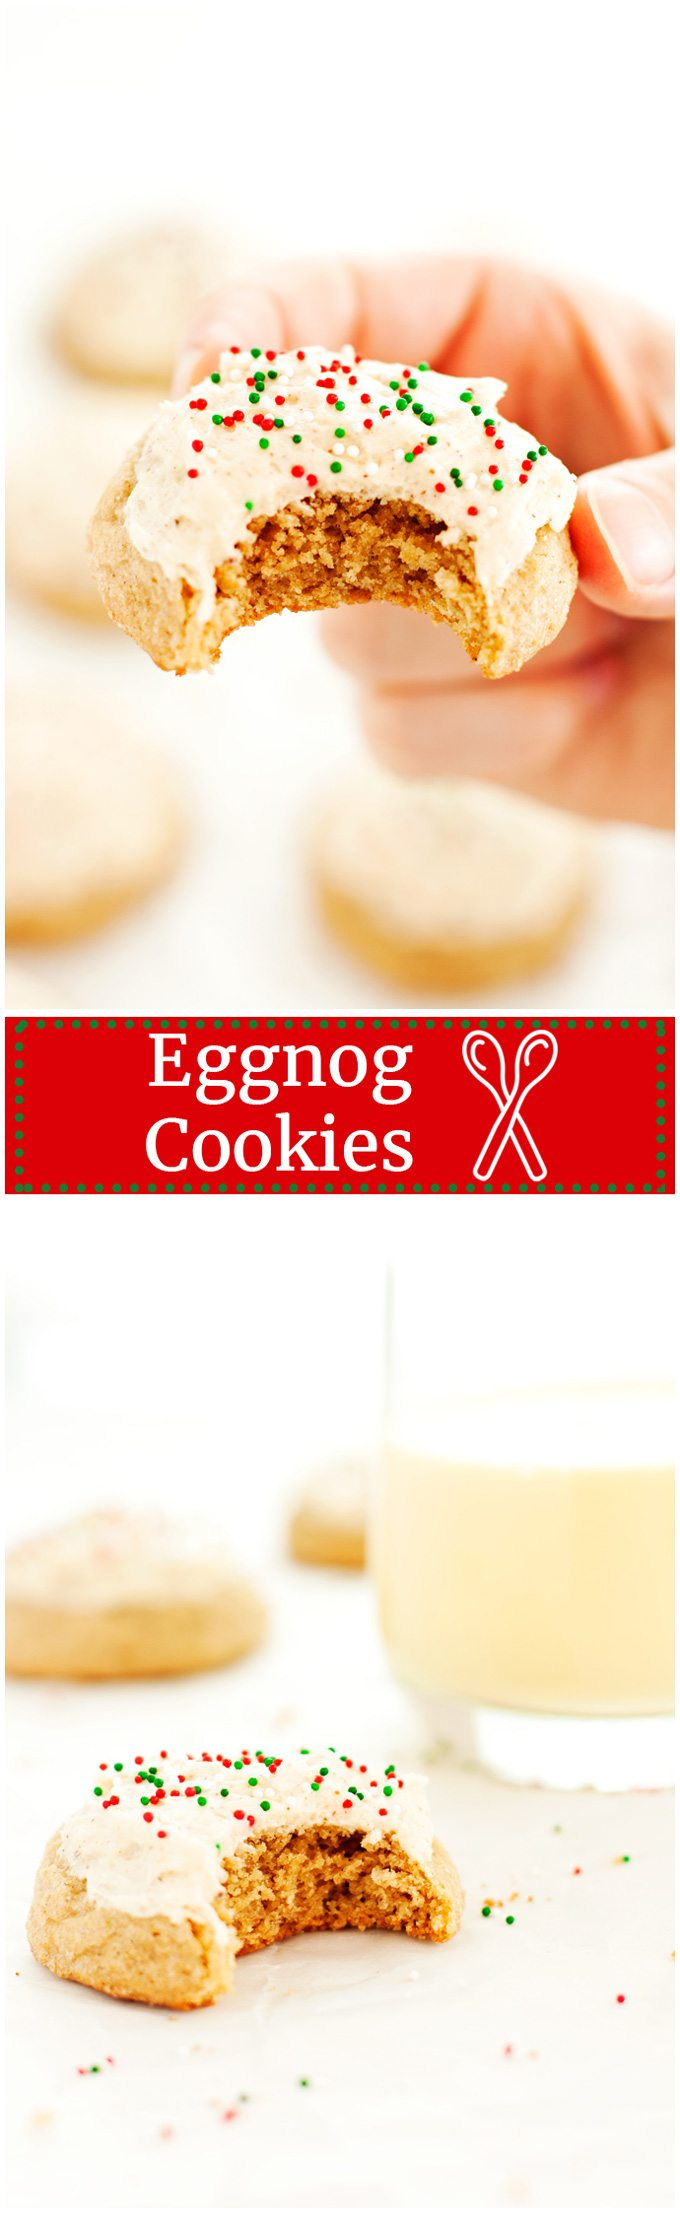 Eggnog cookies frosted with nutmeg and covered in festive red and green sprinkles